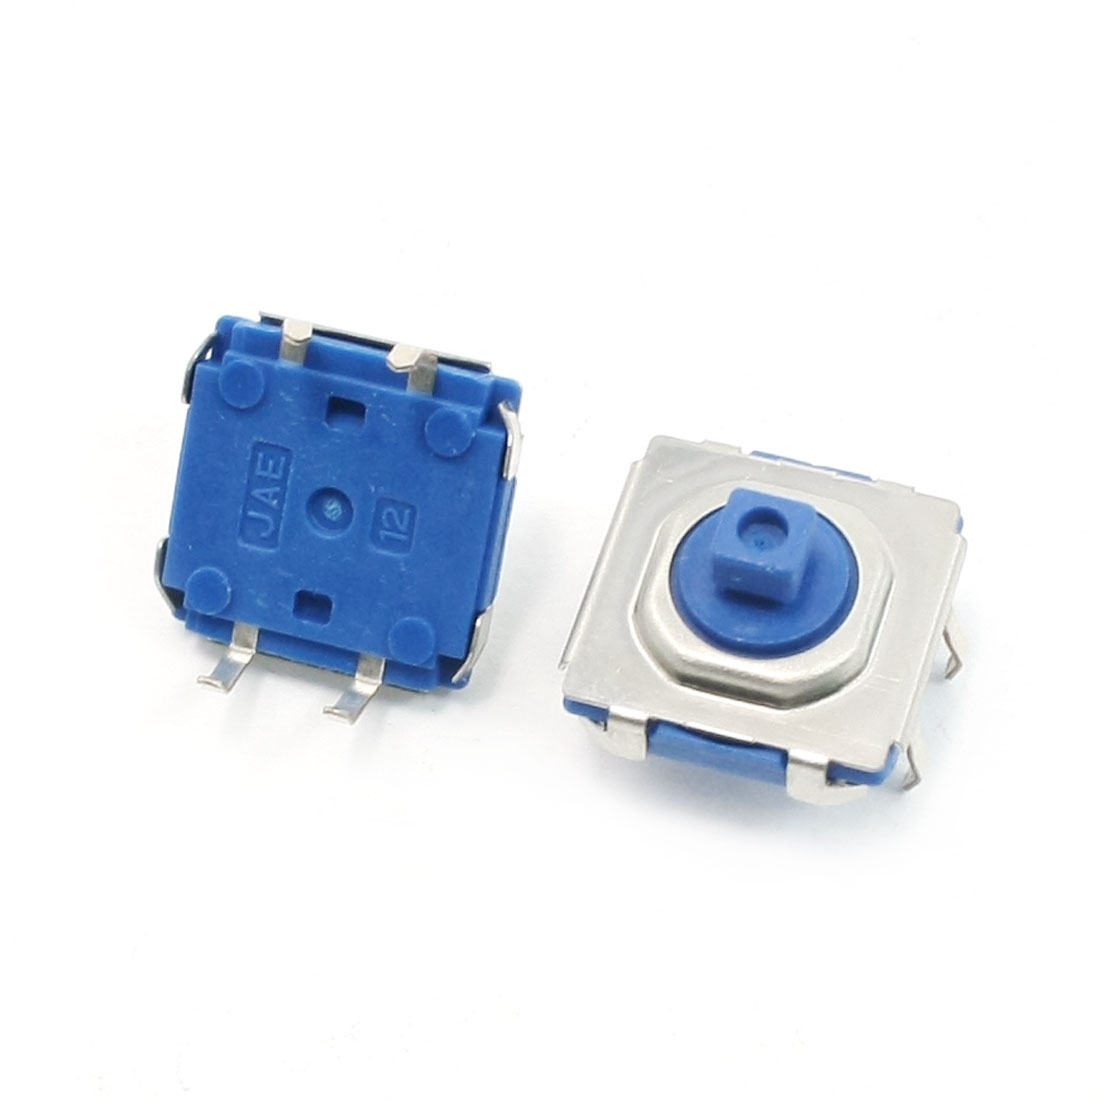 2PCS Water Resistance Momentary Motion Tact Switch 11mmx13mmx13mm DC12V 0.2A